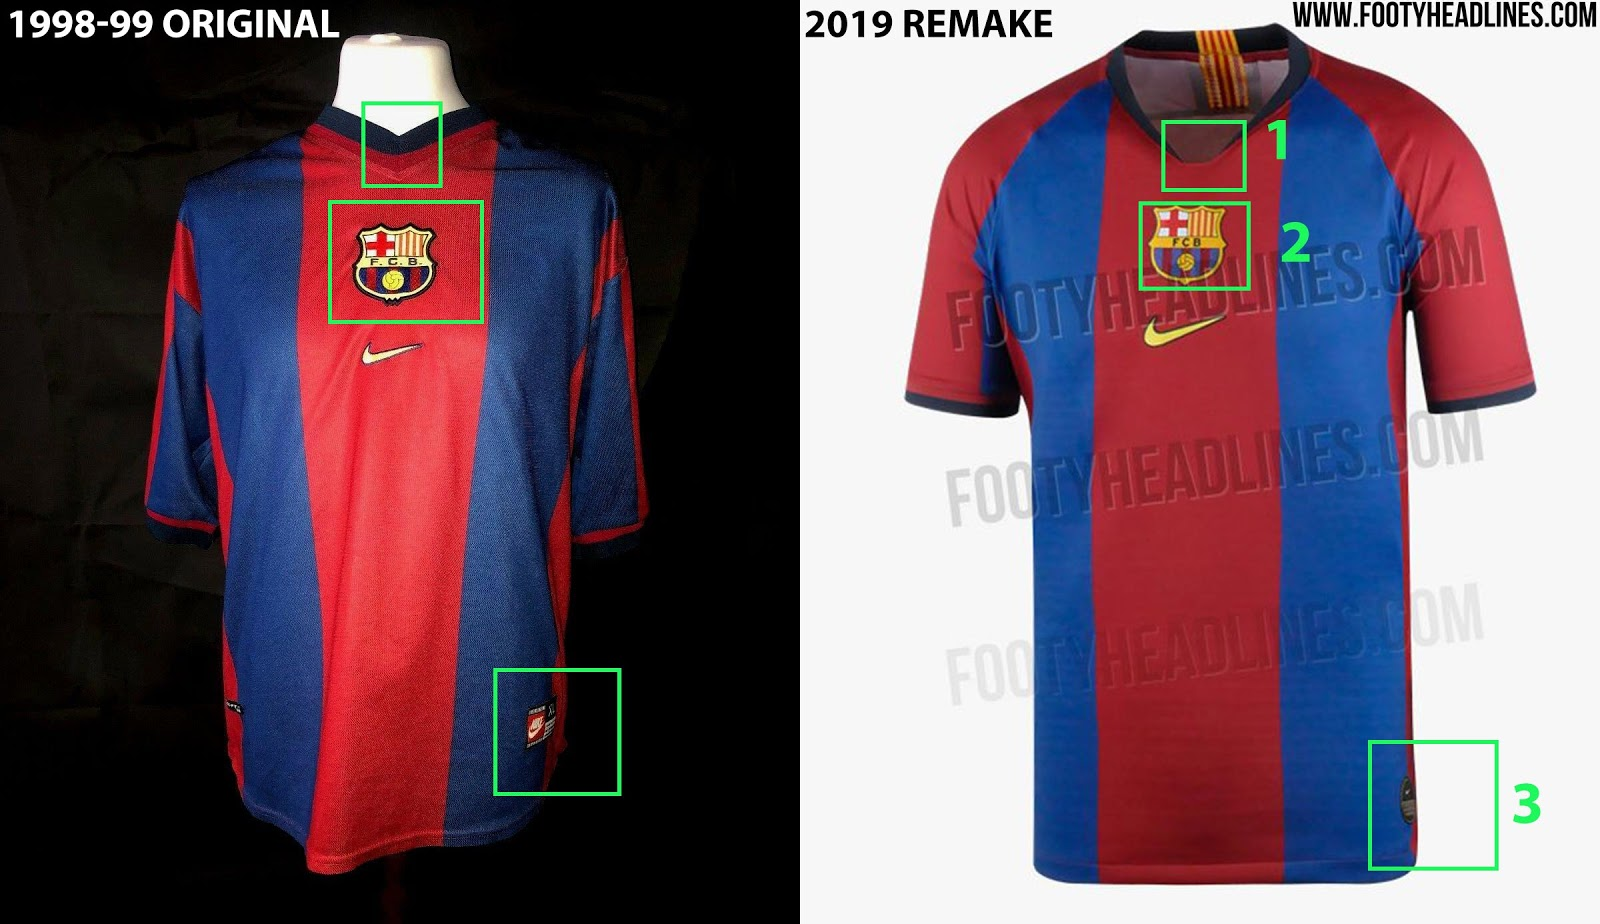 f86f58c3f Every Detail Compared  Nike FC Barcelona 1998-99 vs 2019 Remake ...